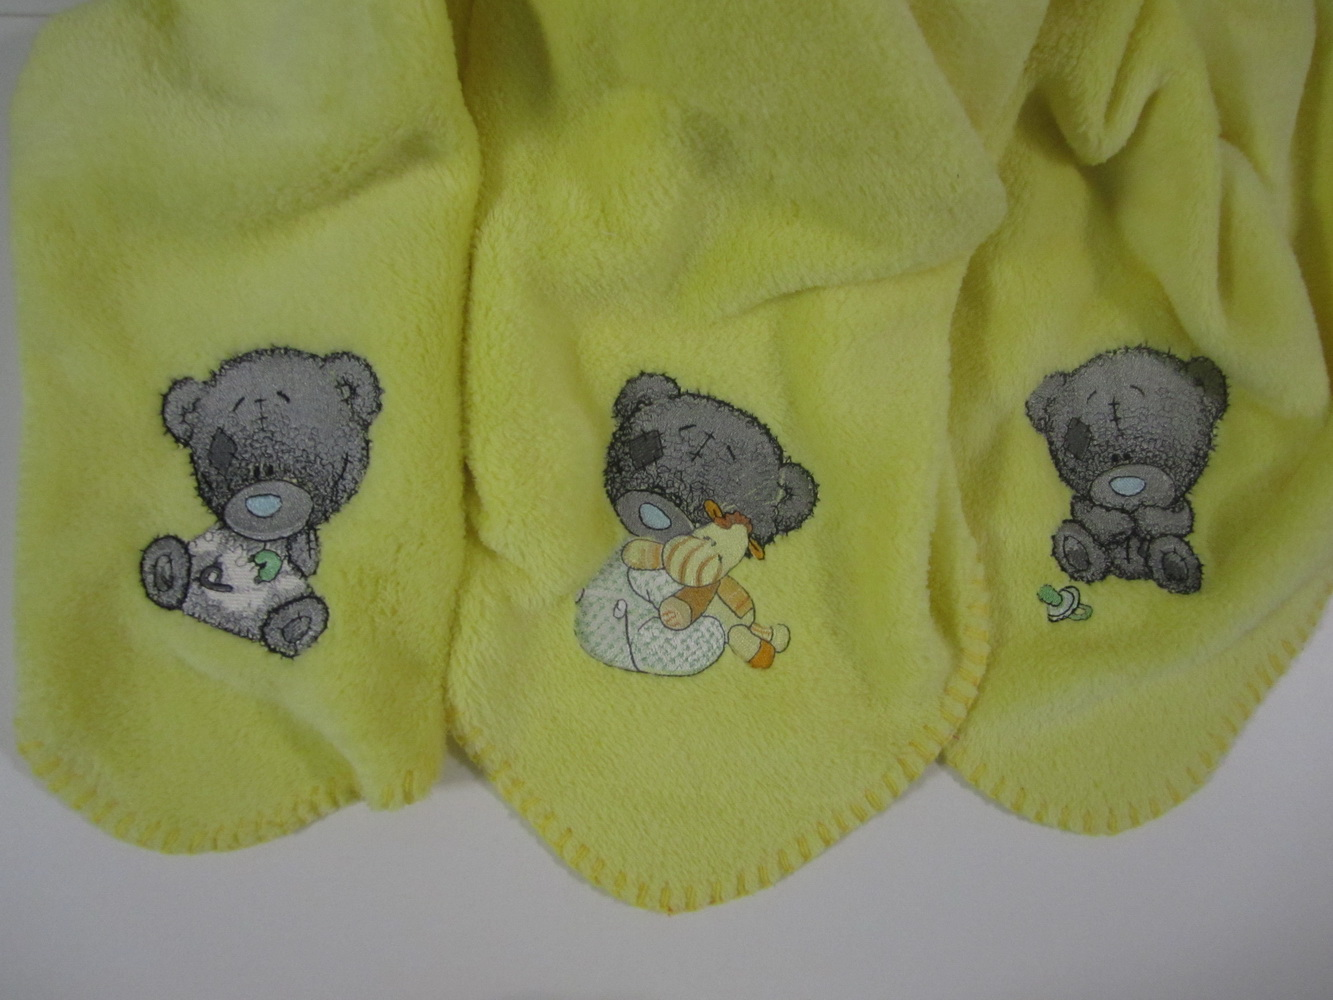 Fleece blanket with cute teddy bears embroidered on it